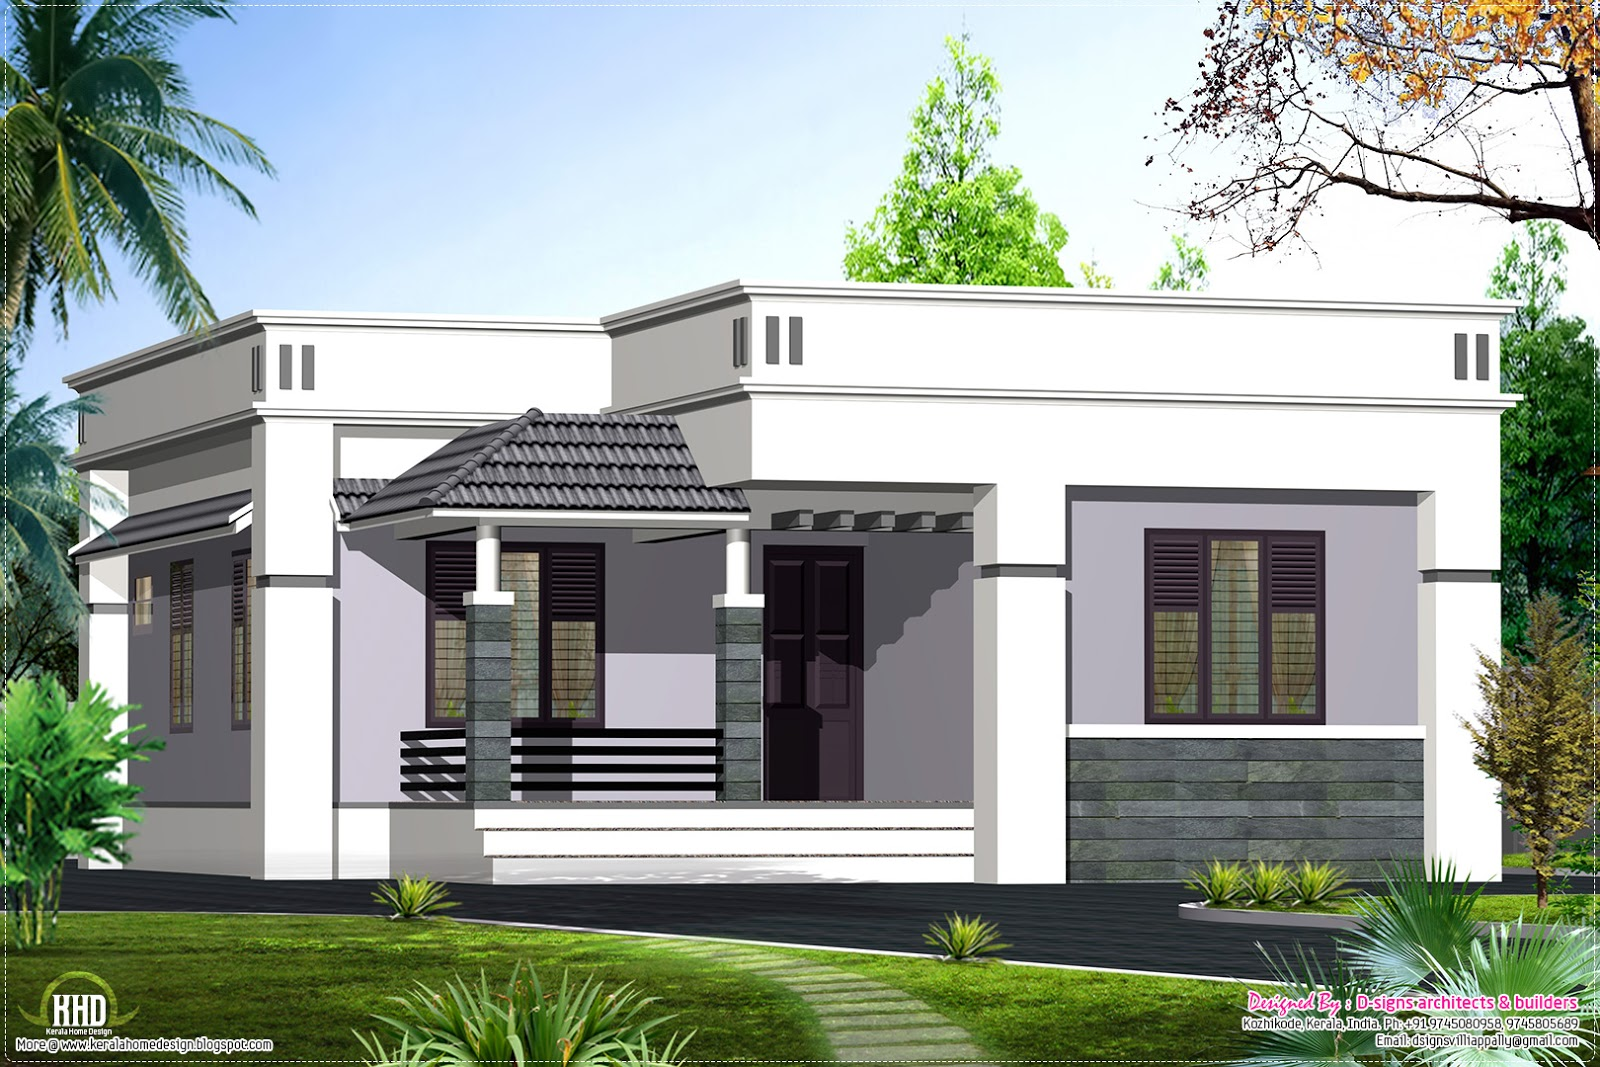 One floor house design 1100 home kerala plans - Housing designs ...